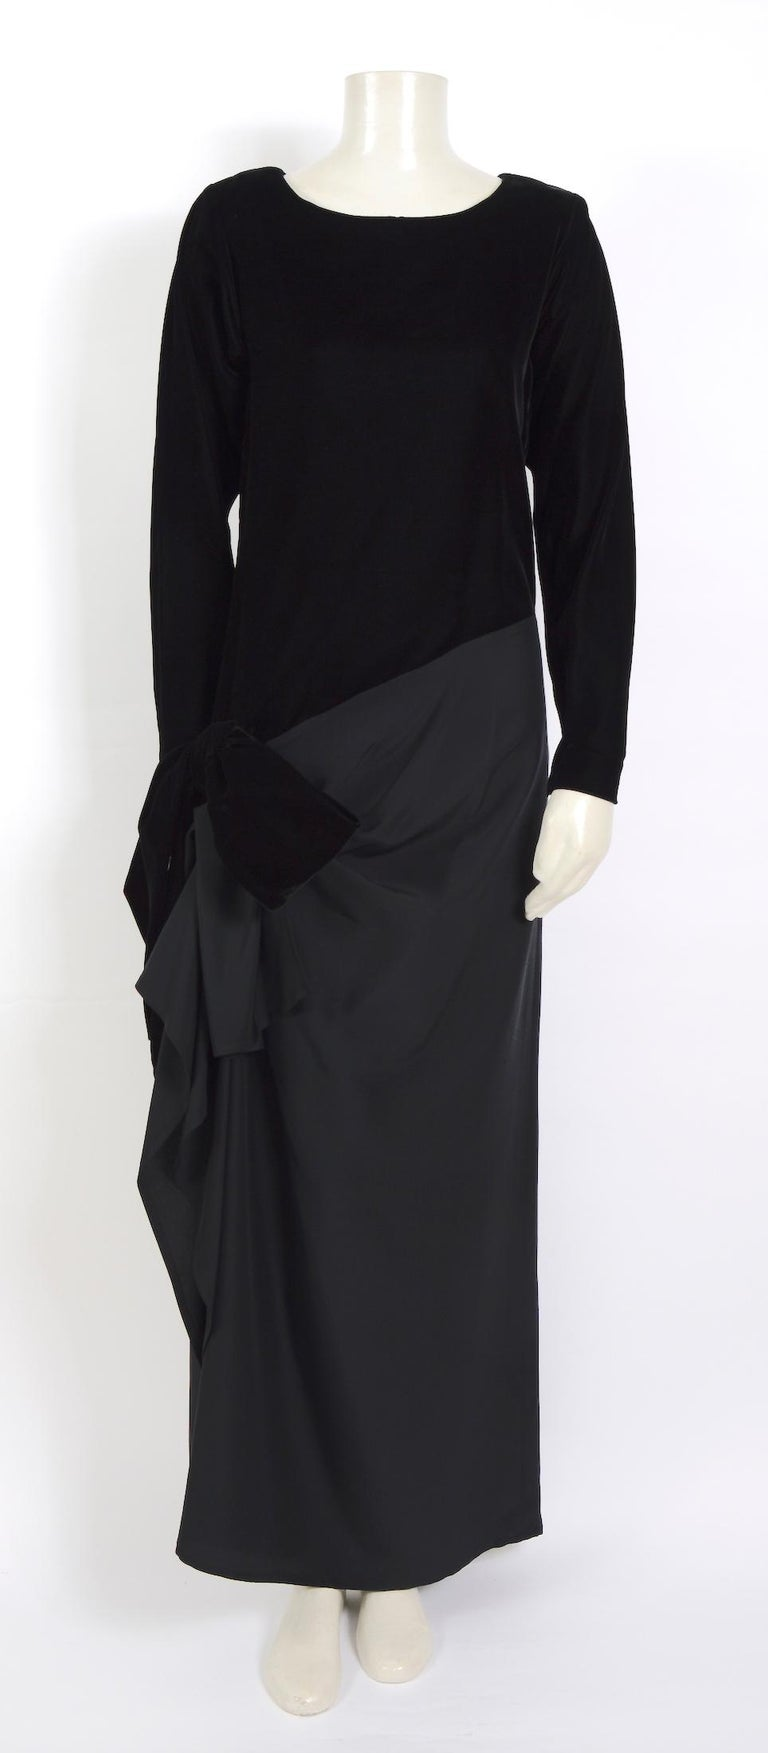 Yves Saint Laurent 1980s vintage black velvet and silk dress For Sale 2